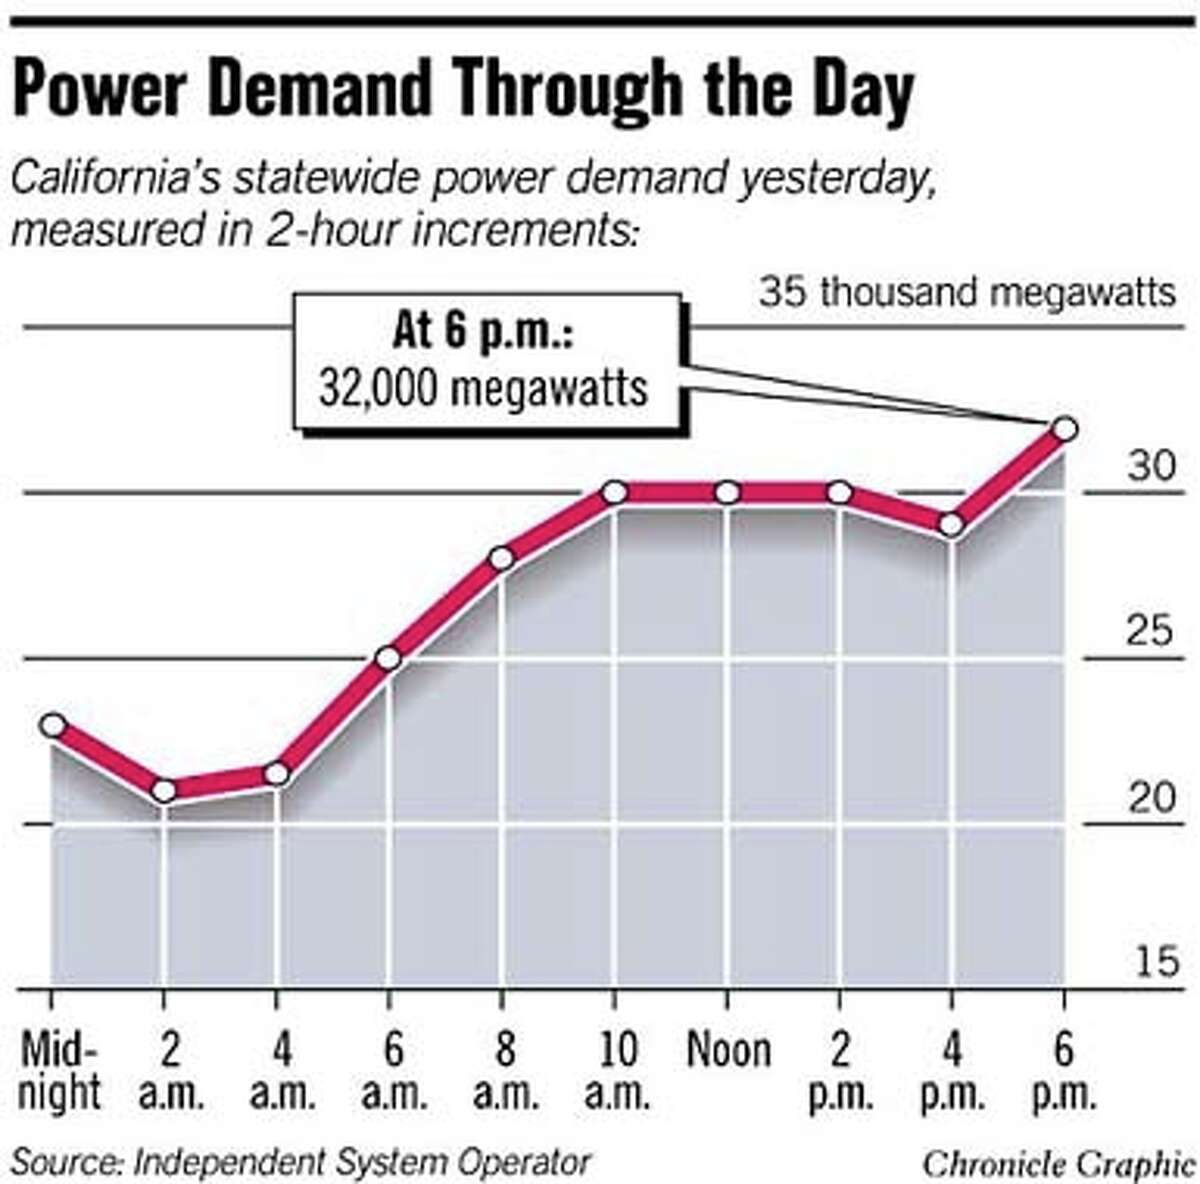 Power Demand Through the Day. Chronicle Graphic